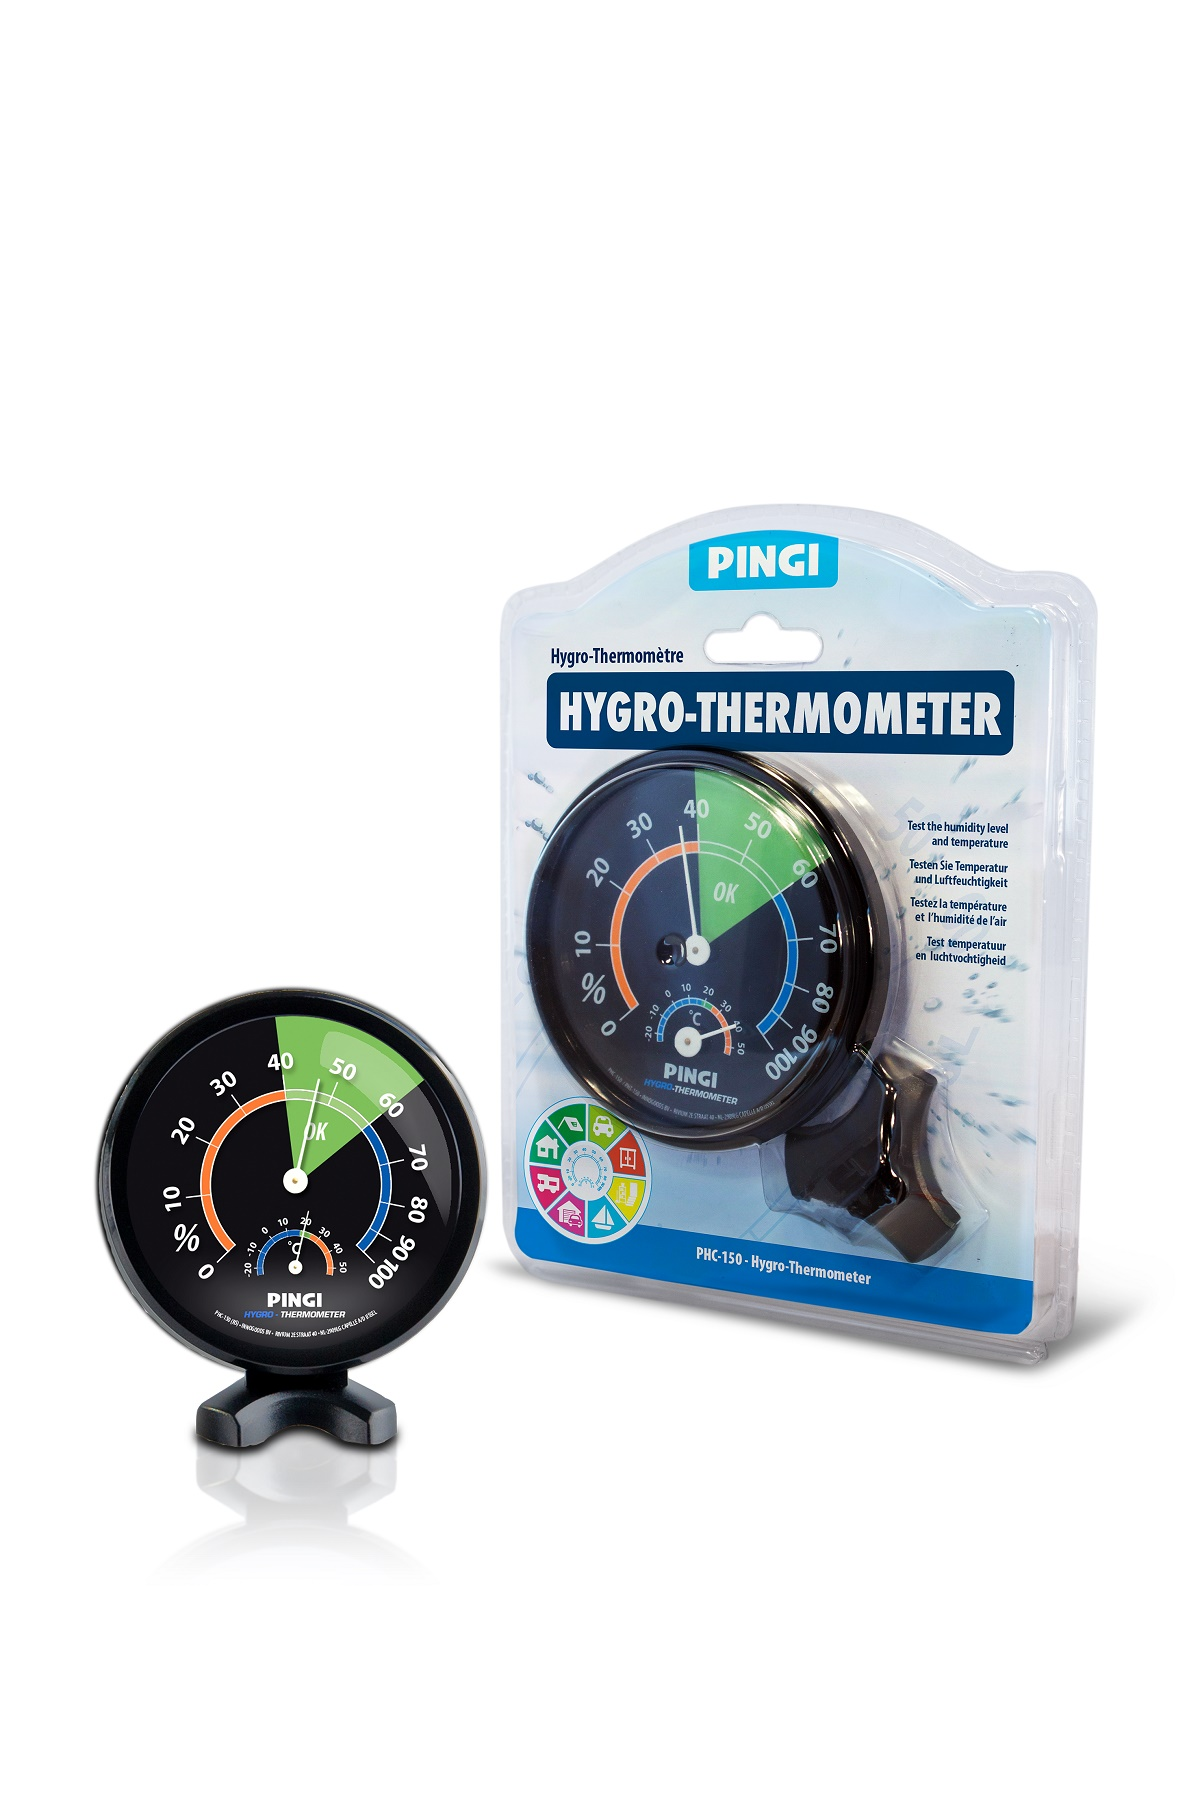 Description of PINGI HYGRO-THERMOMETER